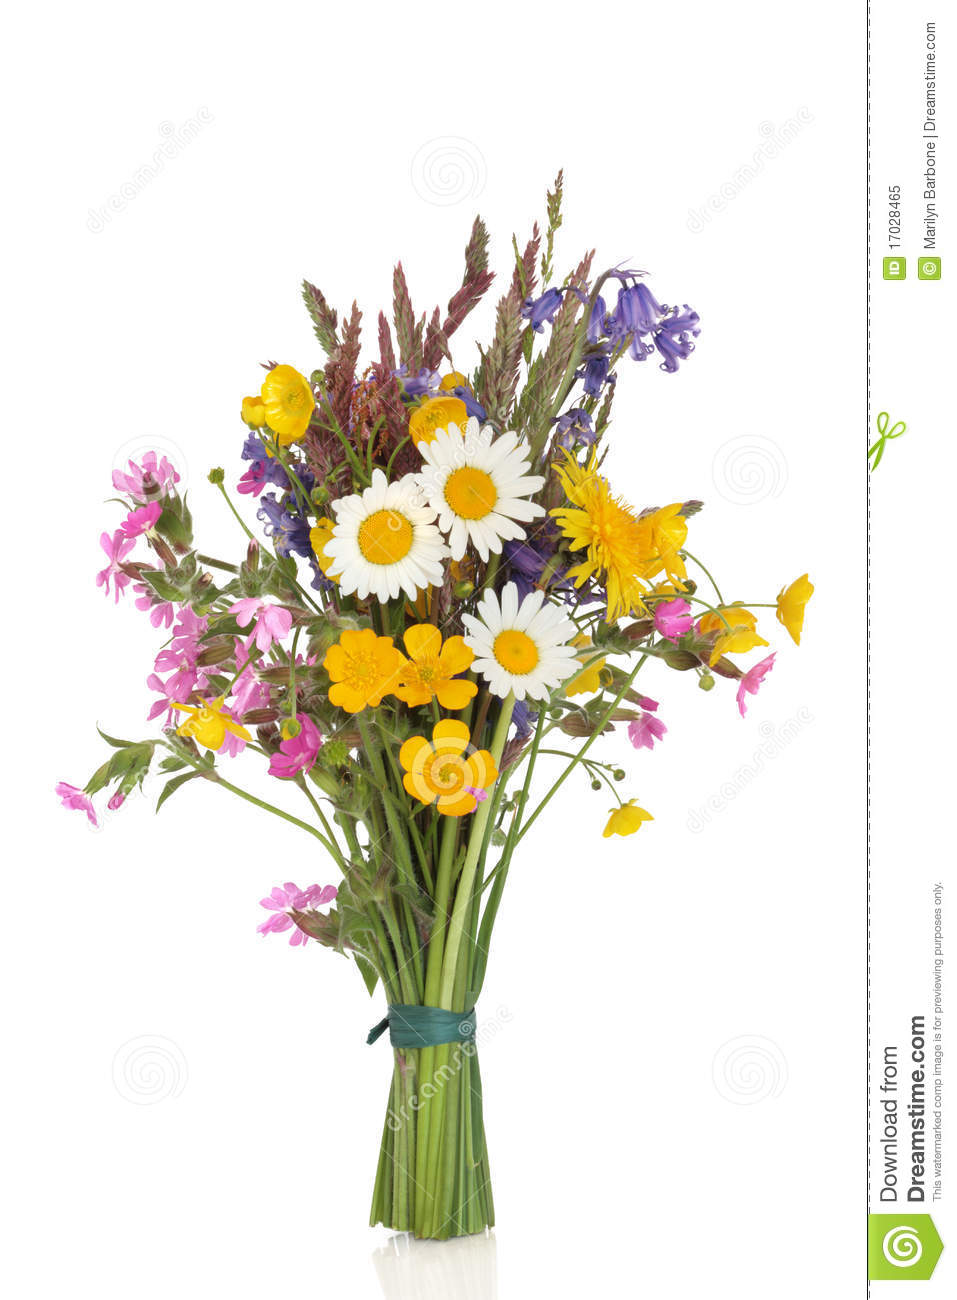 wildflower posy stock image image of bouquet bluebells